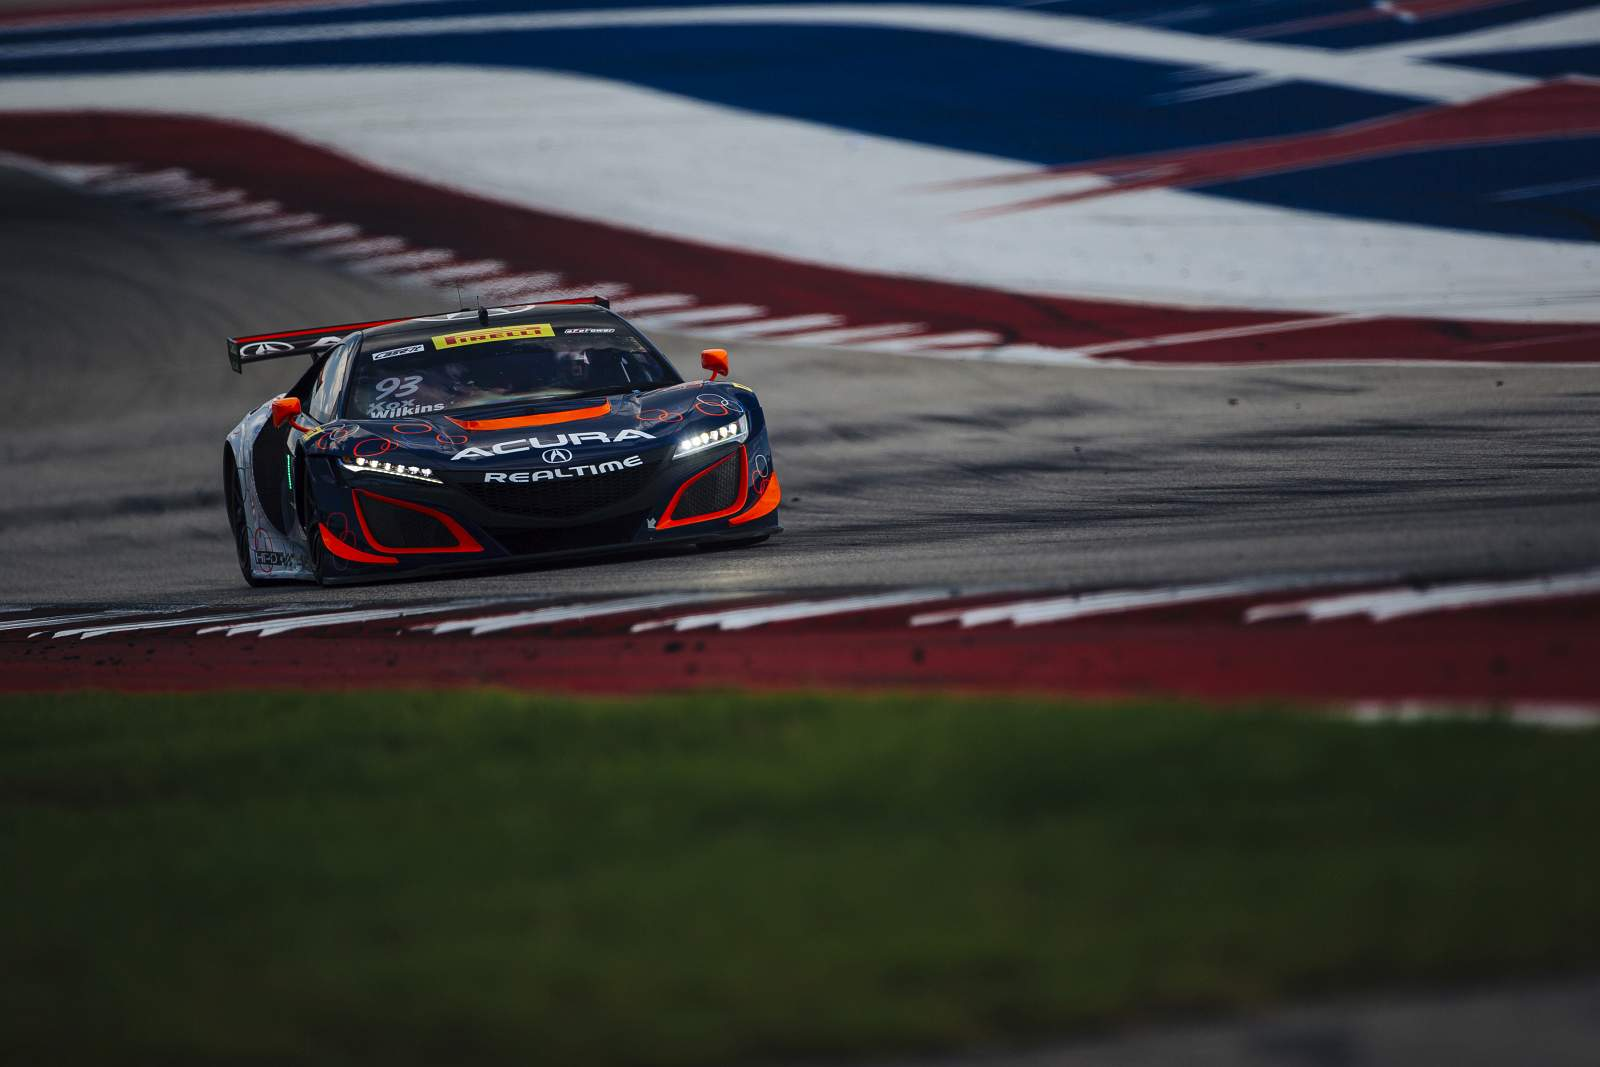 peter-kox-realtime-racing-pirelli-world-challenge-cota--016